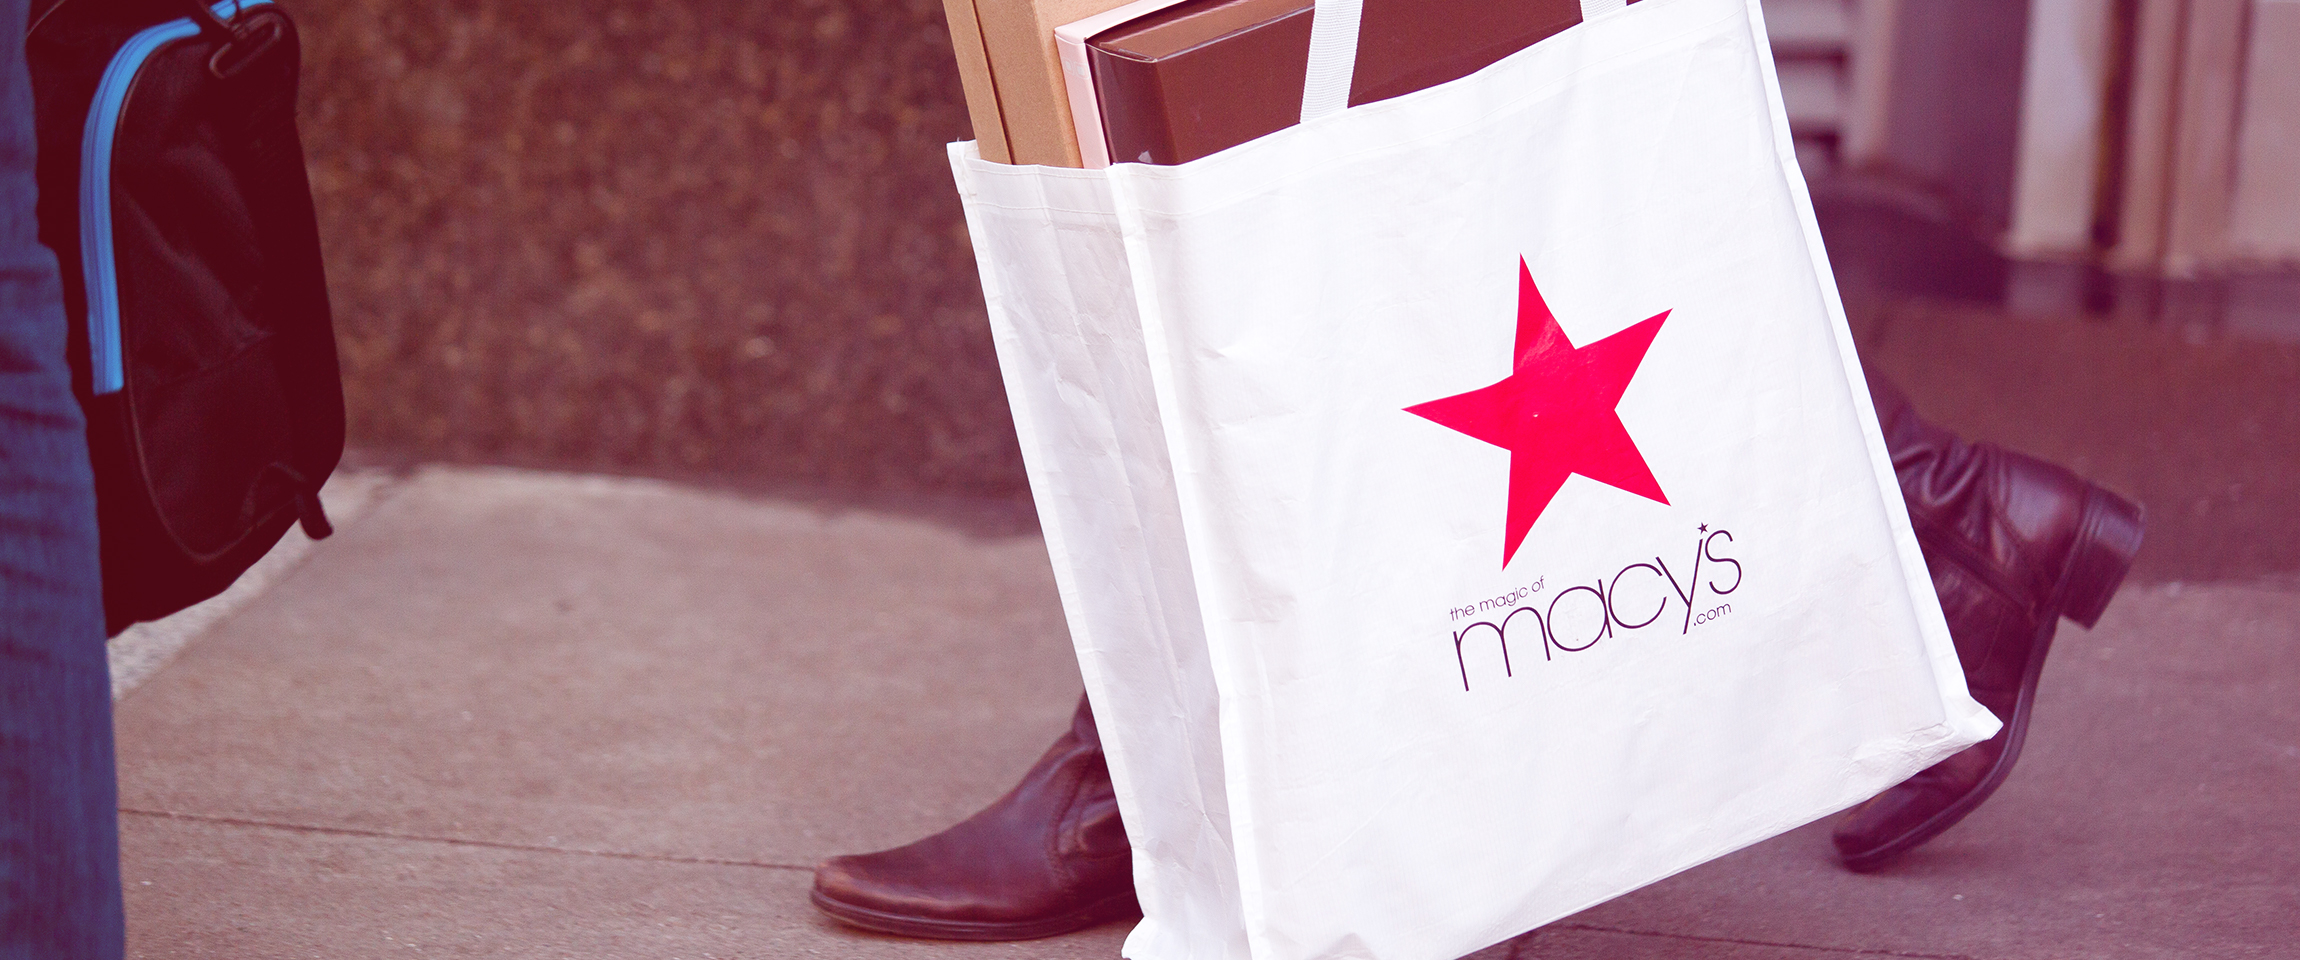 Macy's Plan to Build Billion-dollar Private Label Brands Faces Tough Odds